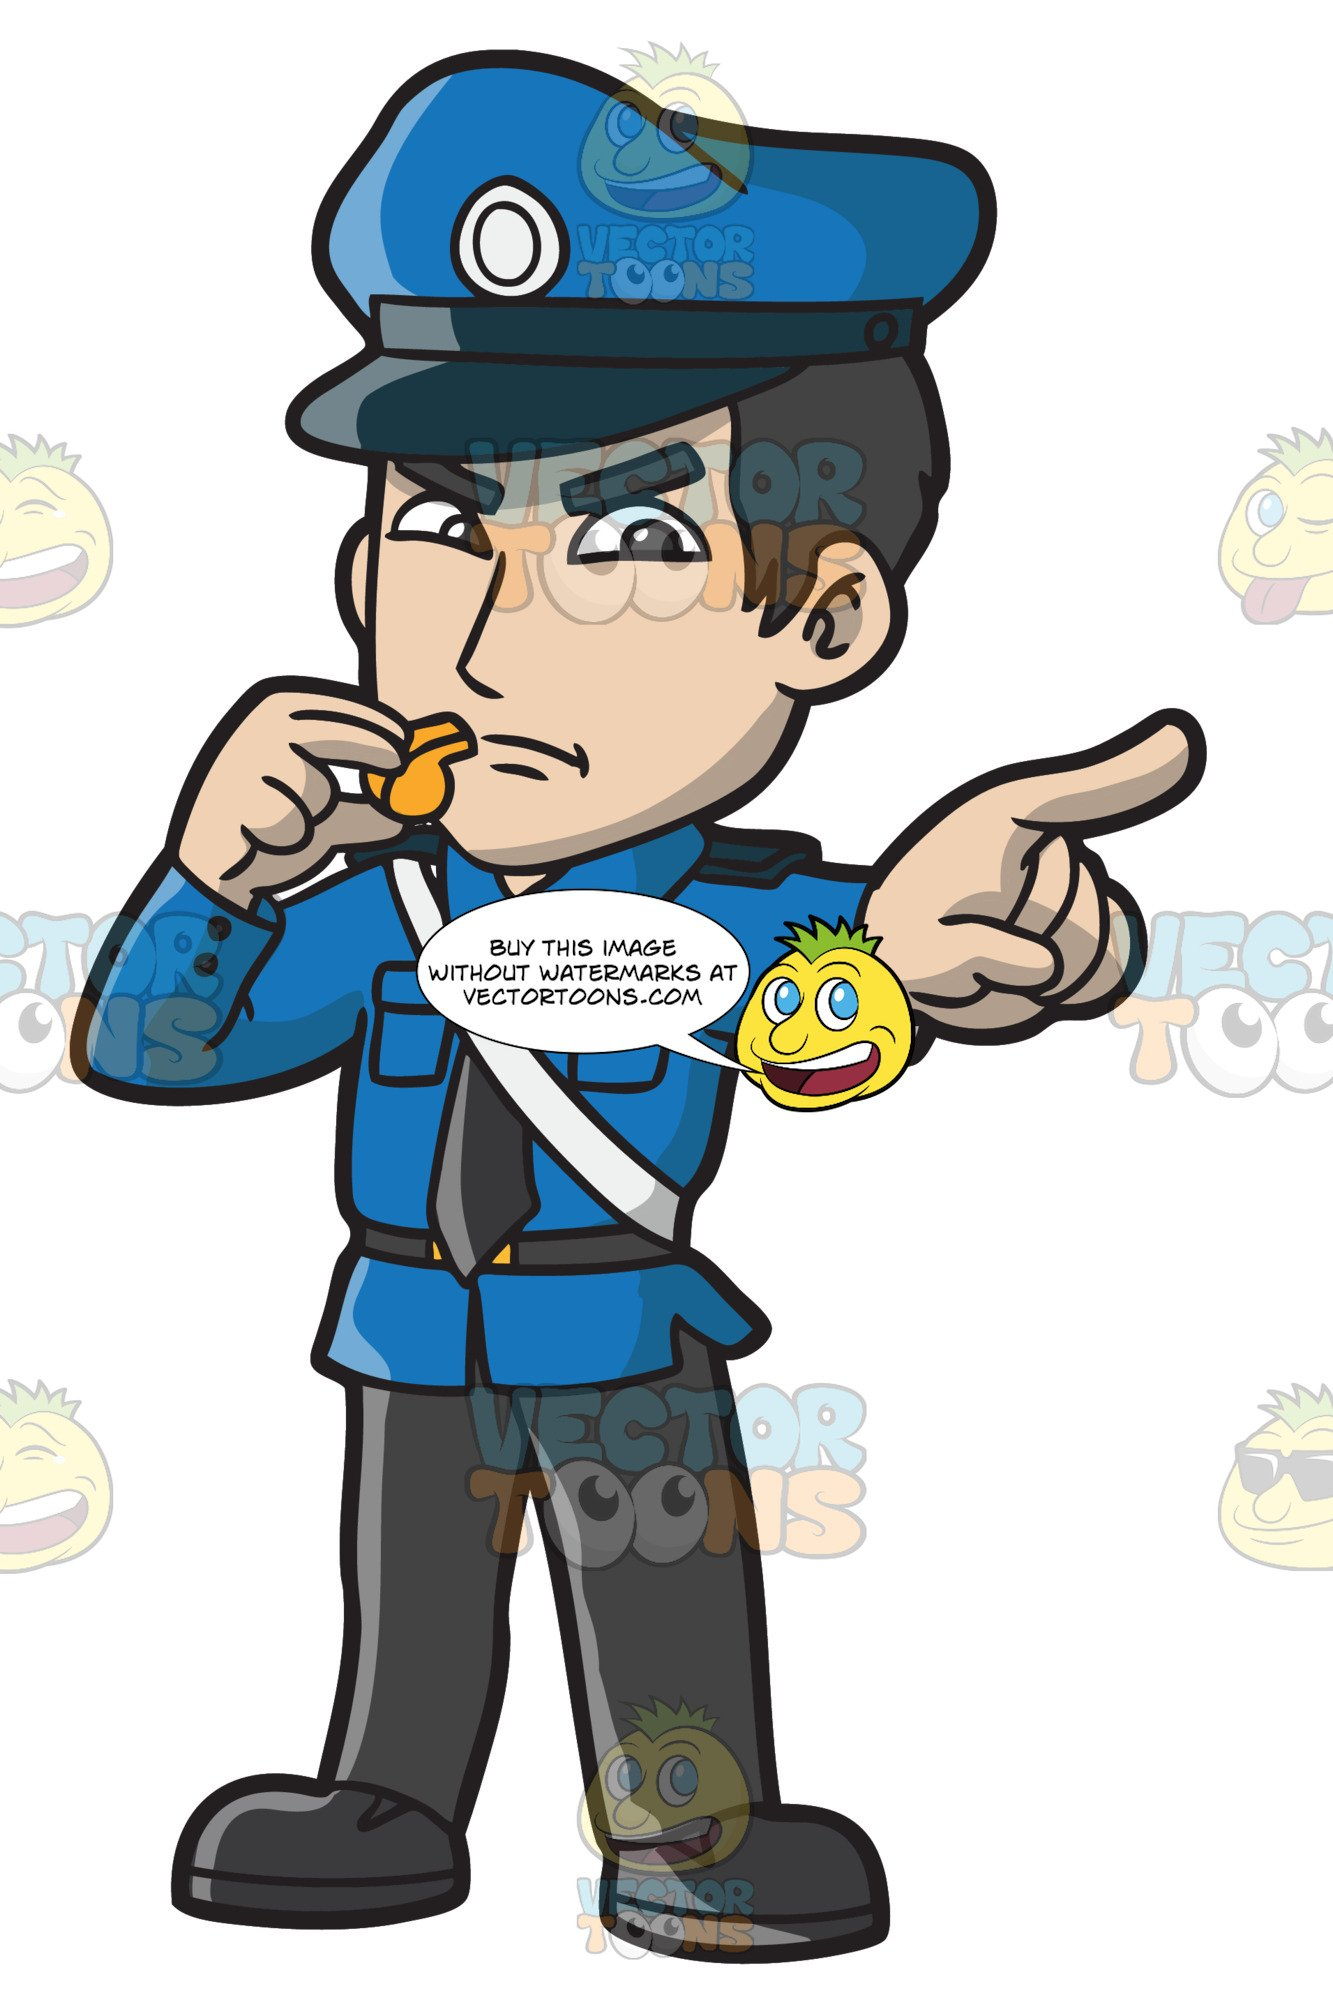 An Angry Police Officer With A Whistle.